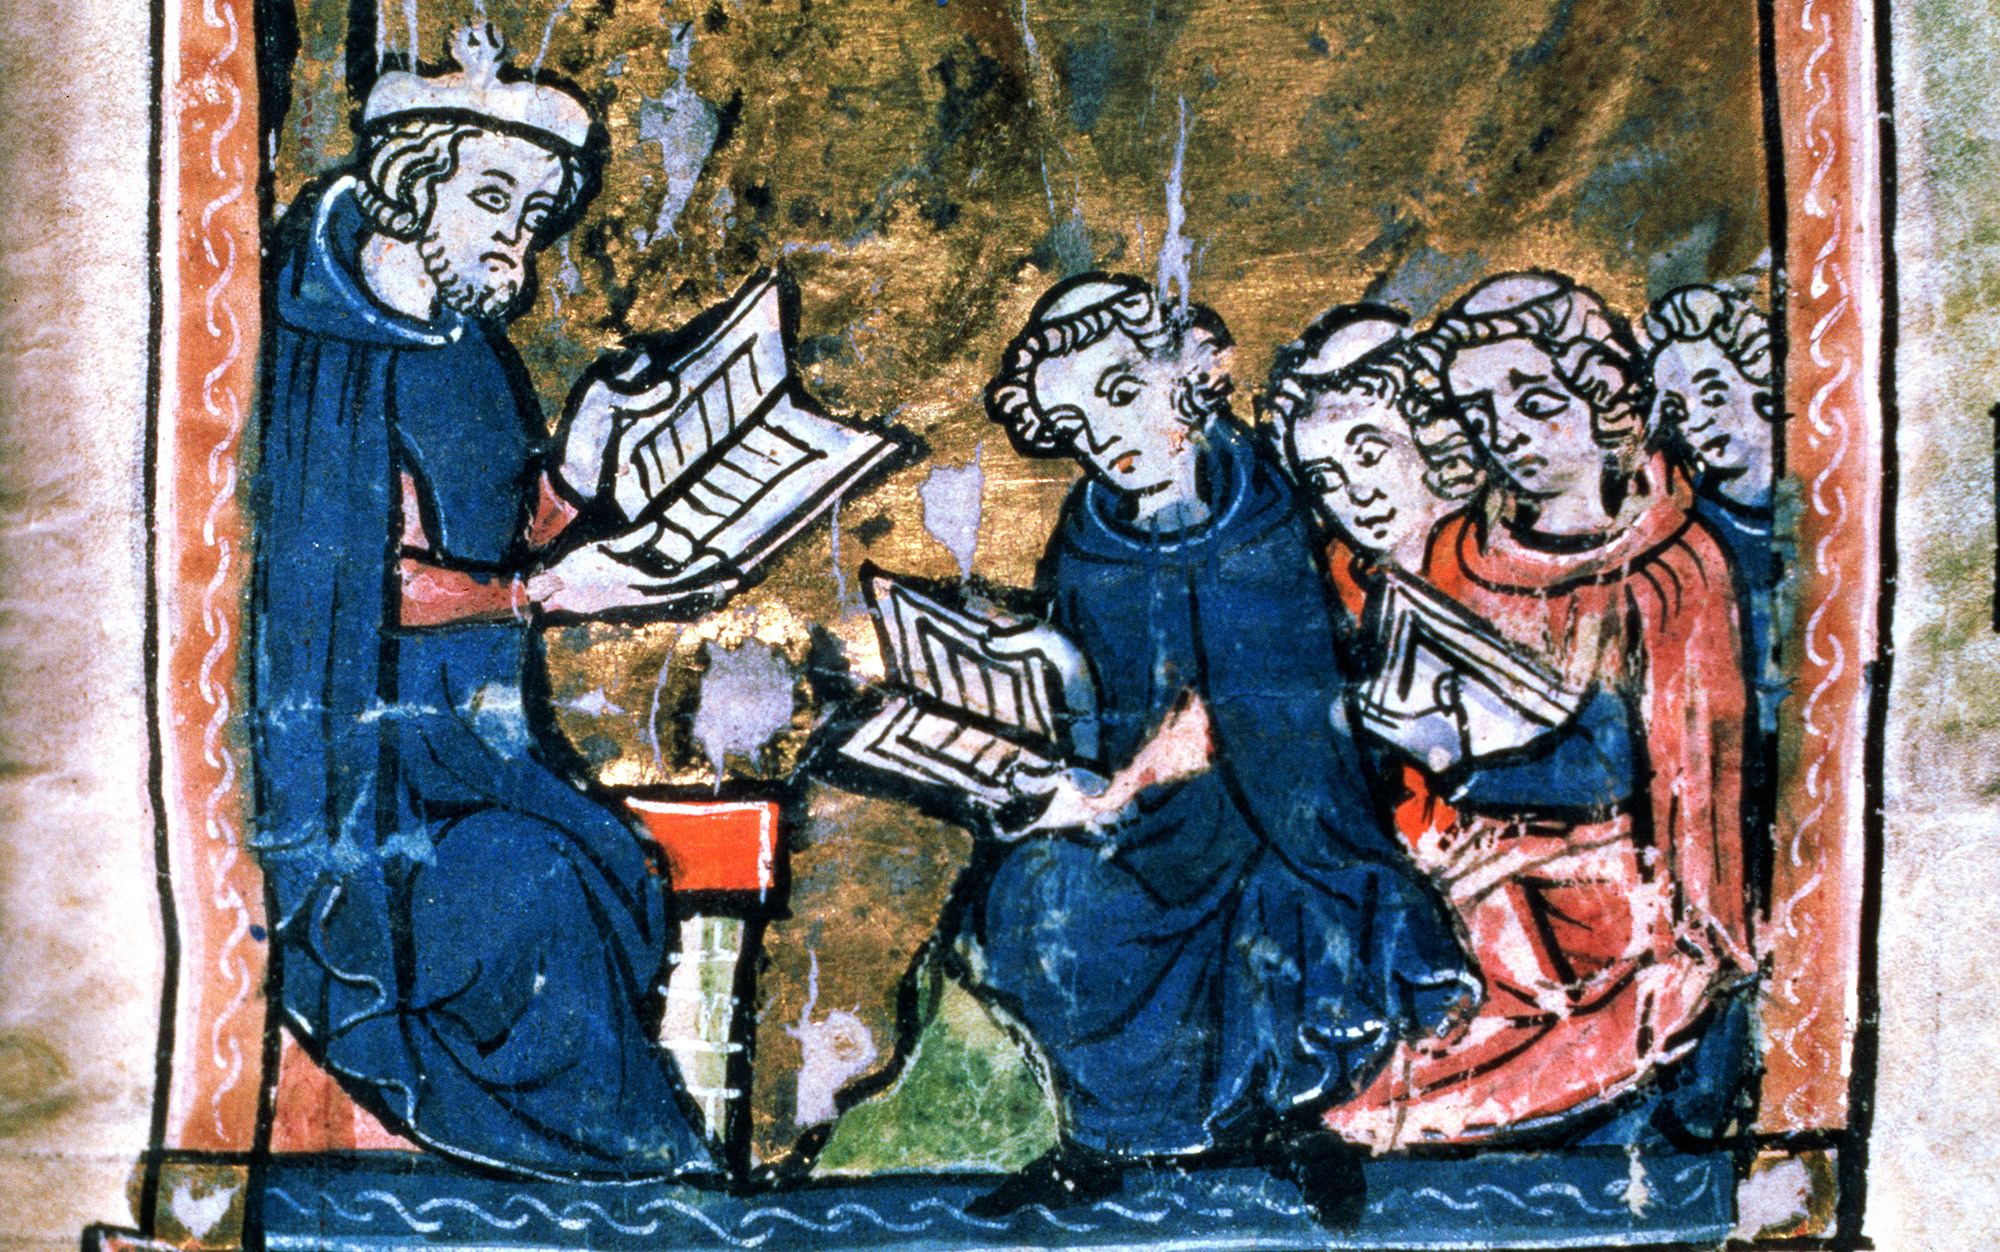 The teaching of Logic or Dialetics from a collection of scientific, philosophical and poetic writings, French, 13th century; Bibliotheque Sainte-Genevieve, Paris, France. The 13th century was a time of extreme intellectual activity in Europe, superior to anything else in the world, centered 800 miles around Paris. In particular the heliocentric system was proposed by Buridan, after he overthrew Aristotelian Physics, by inventing and discovering inertia.